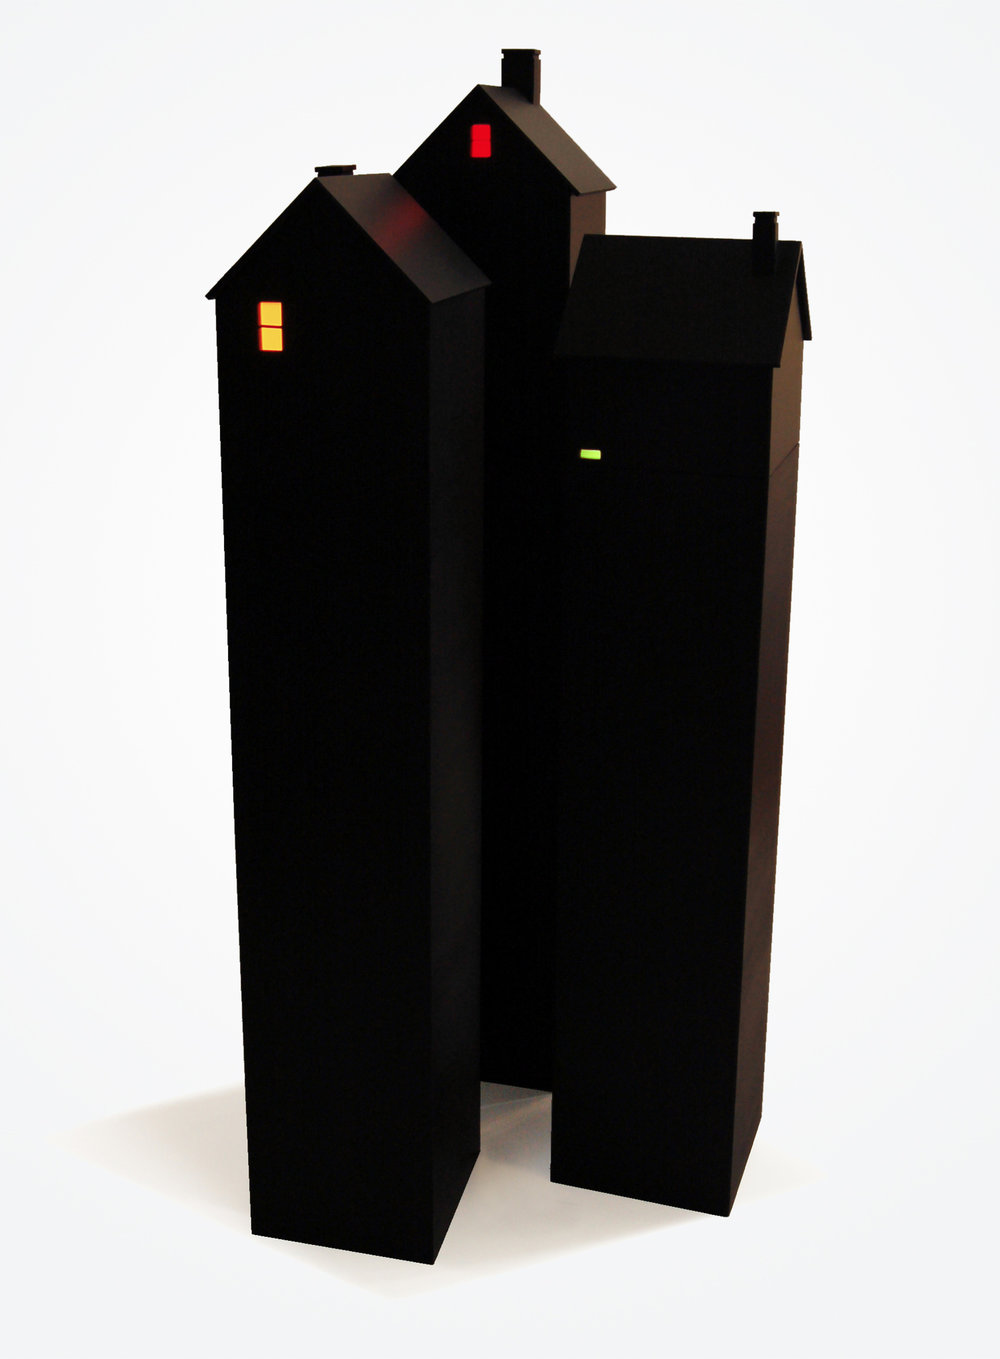 Houses at Night (with pedestals) 2015, wood, plexi, bulb, battery